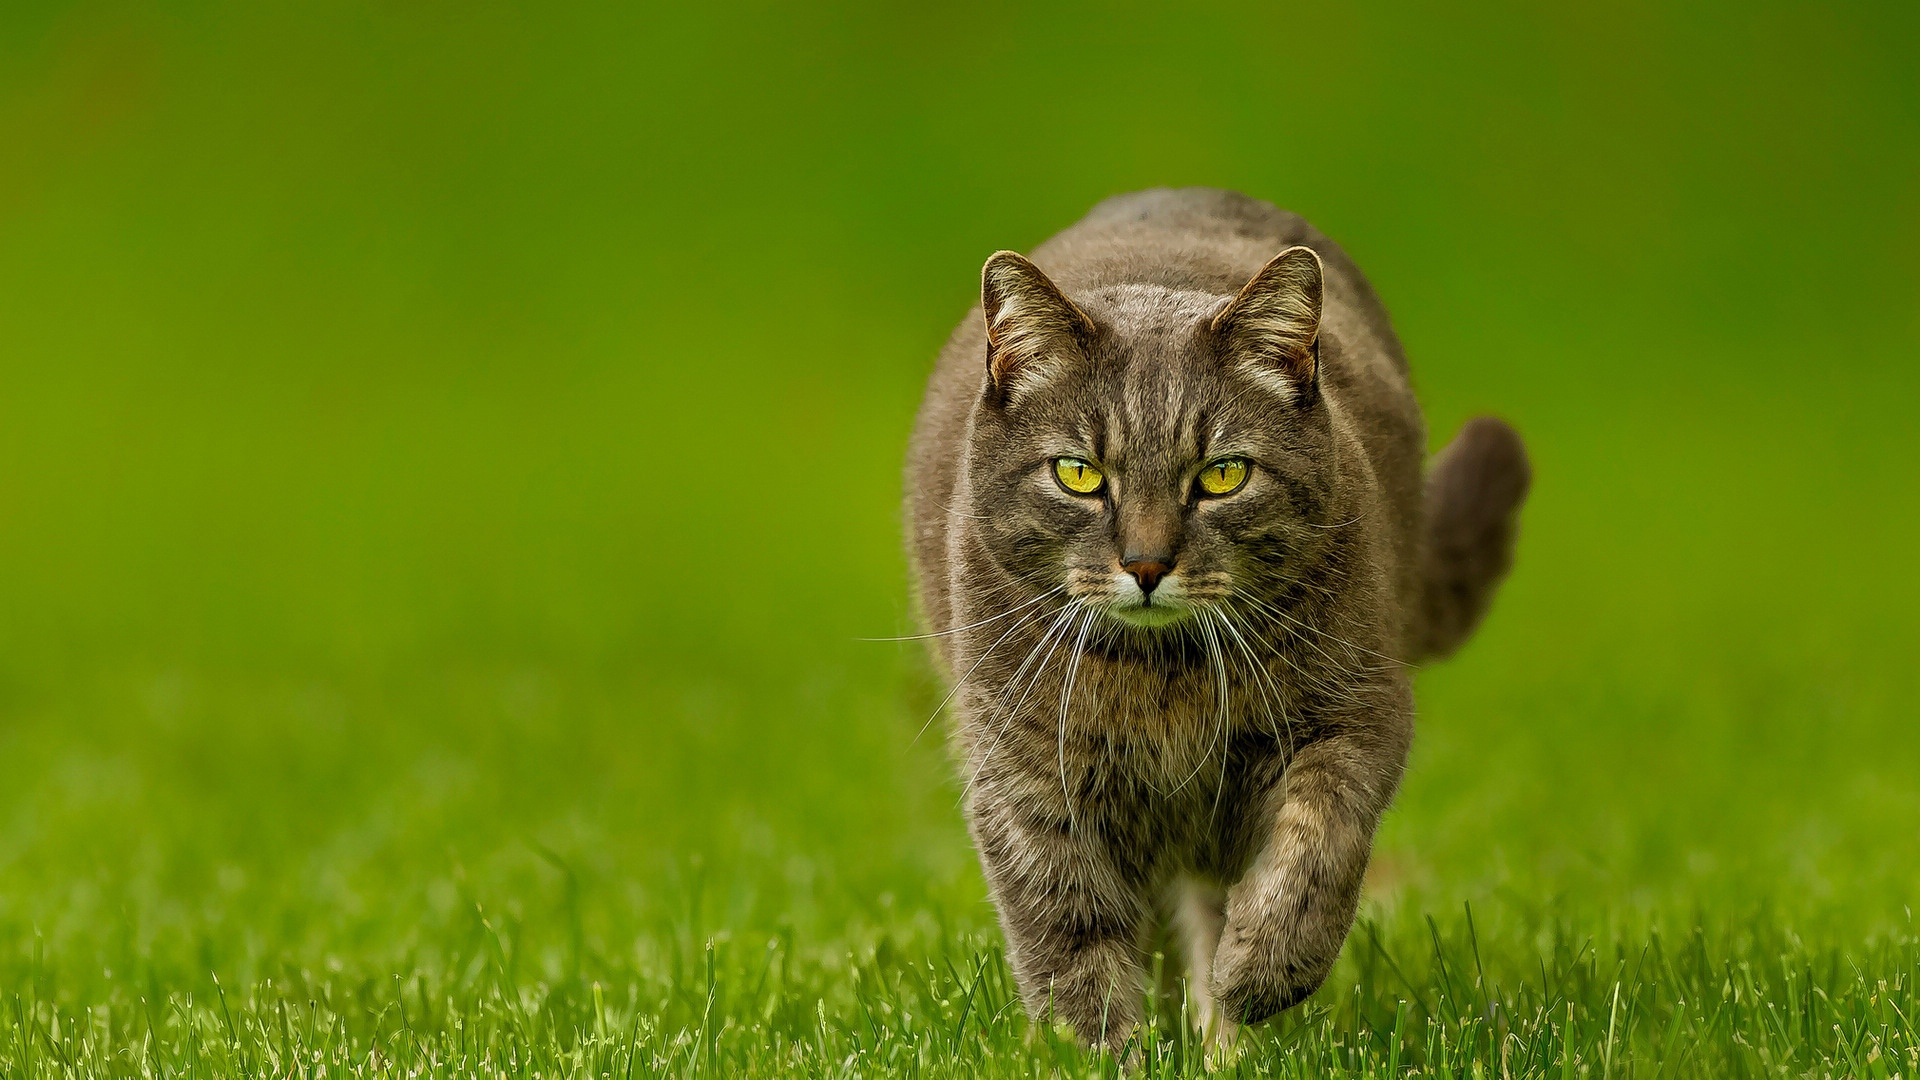 Cat Spring Lawn Green Nature Wallpaper Background Full HD 1080p 1920x1080